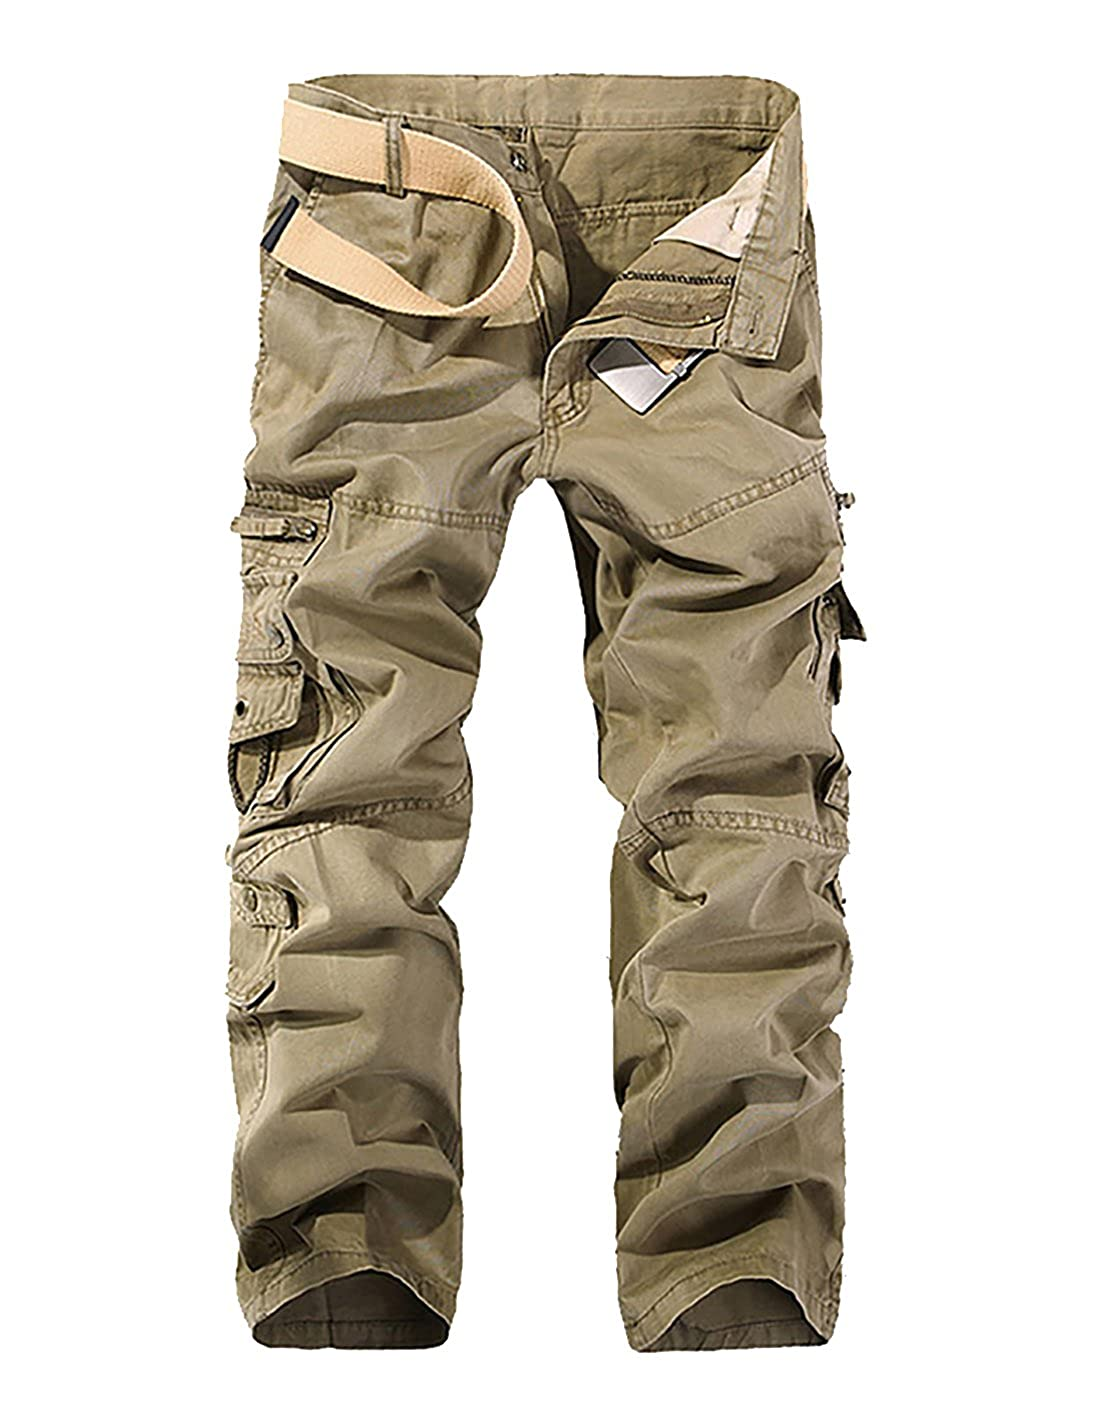 986721d3feeb4 Sits at waist / loose fit / straight leg.Zip fly and button closure,  regular fit, straight leg, NO belt.